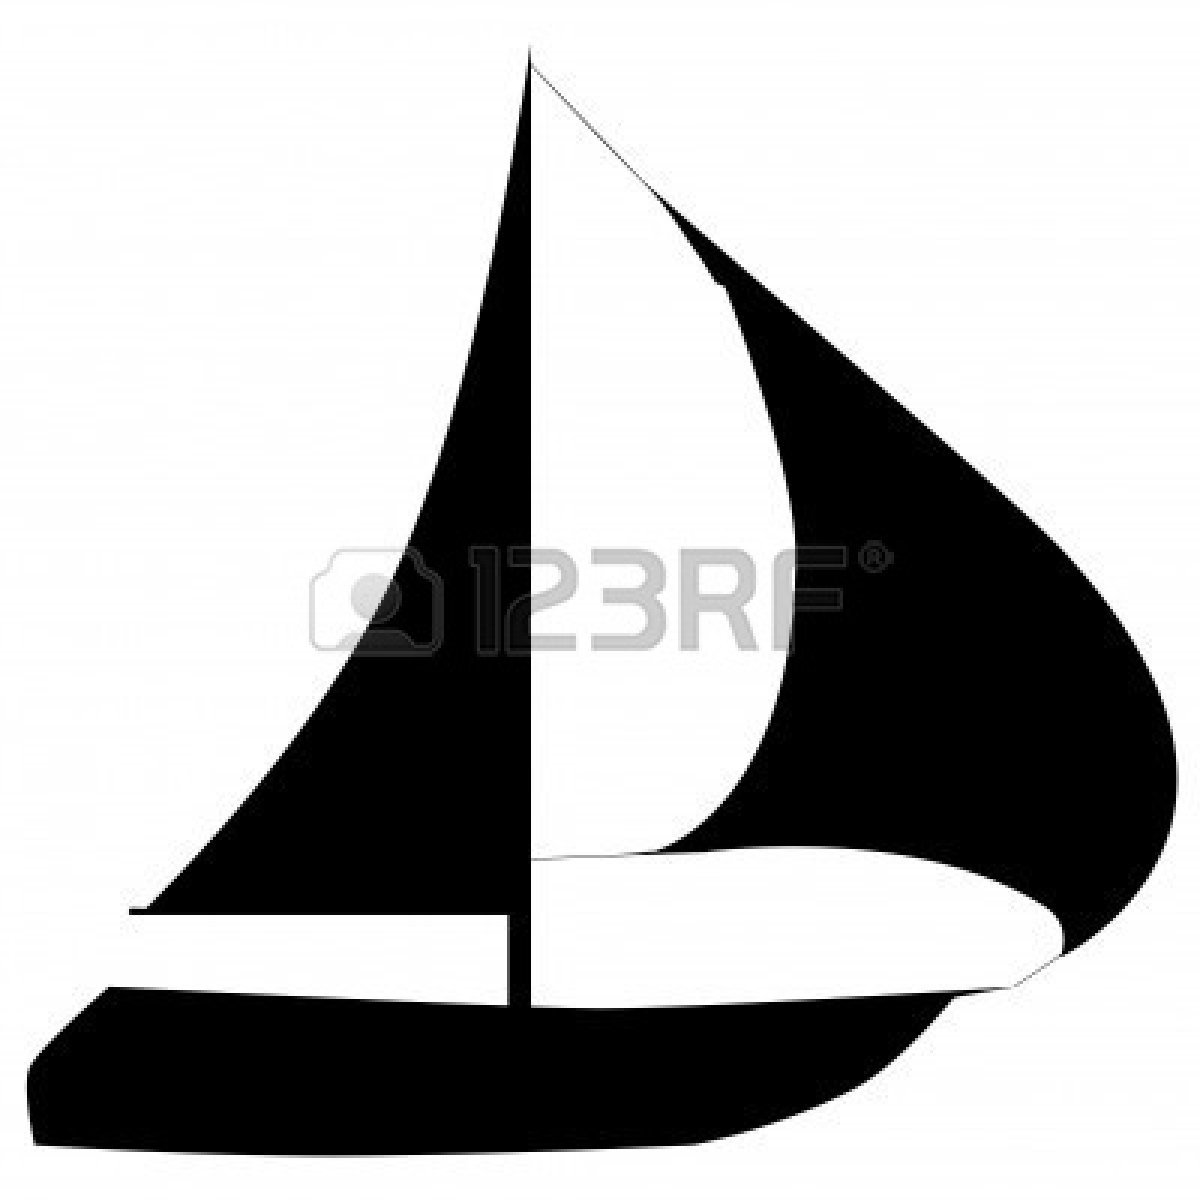 Wind clipart sailboat Free Images sailboat%20clipart%20silhouette Sailboat Clipart